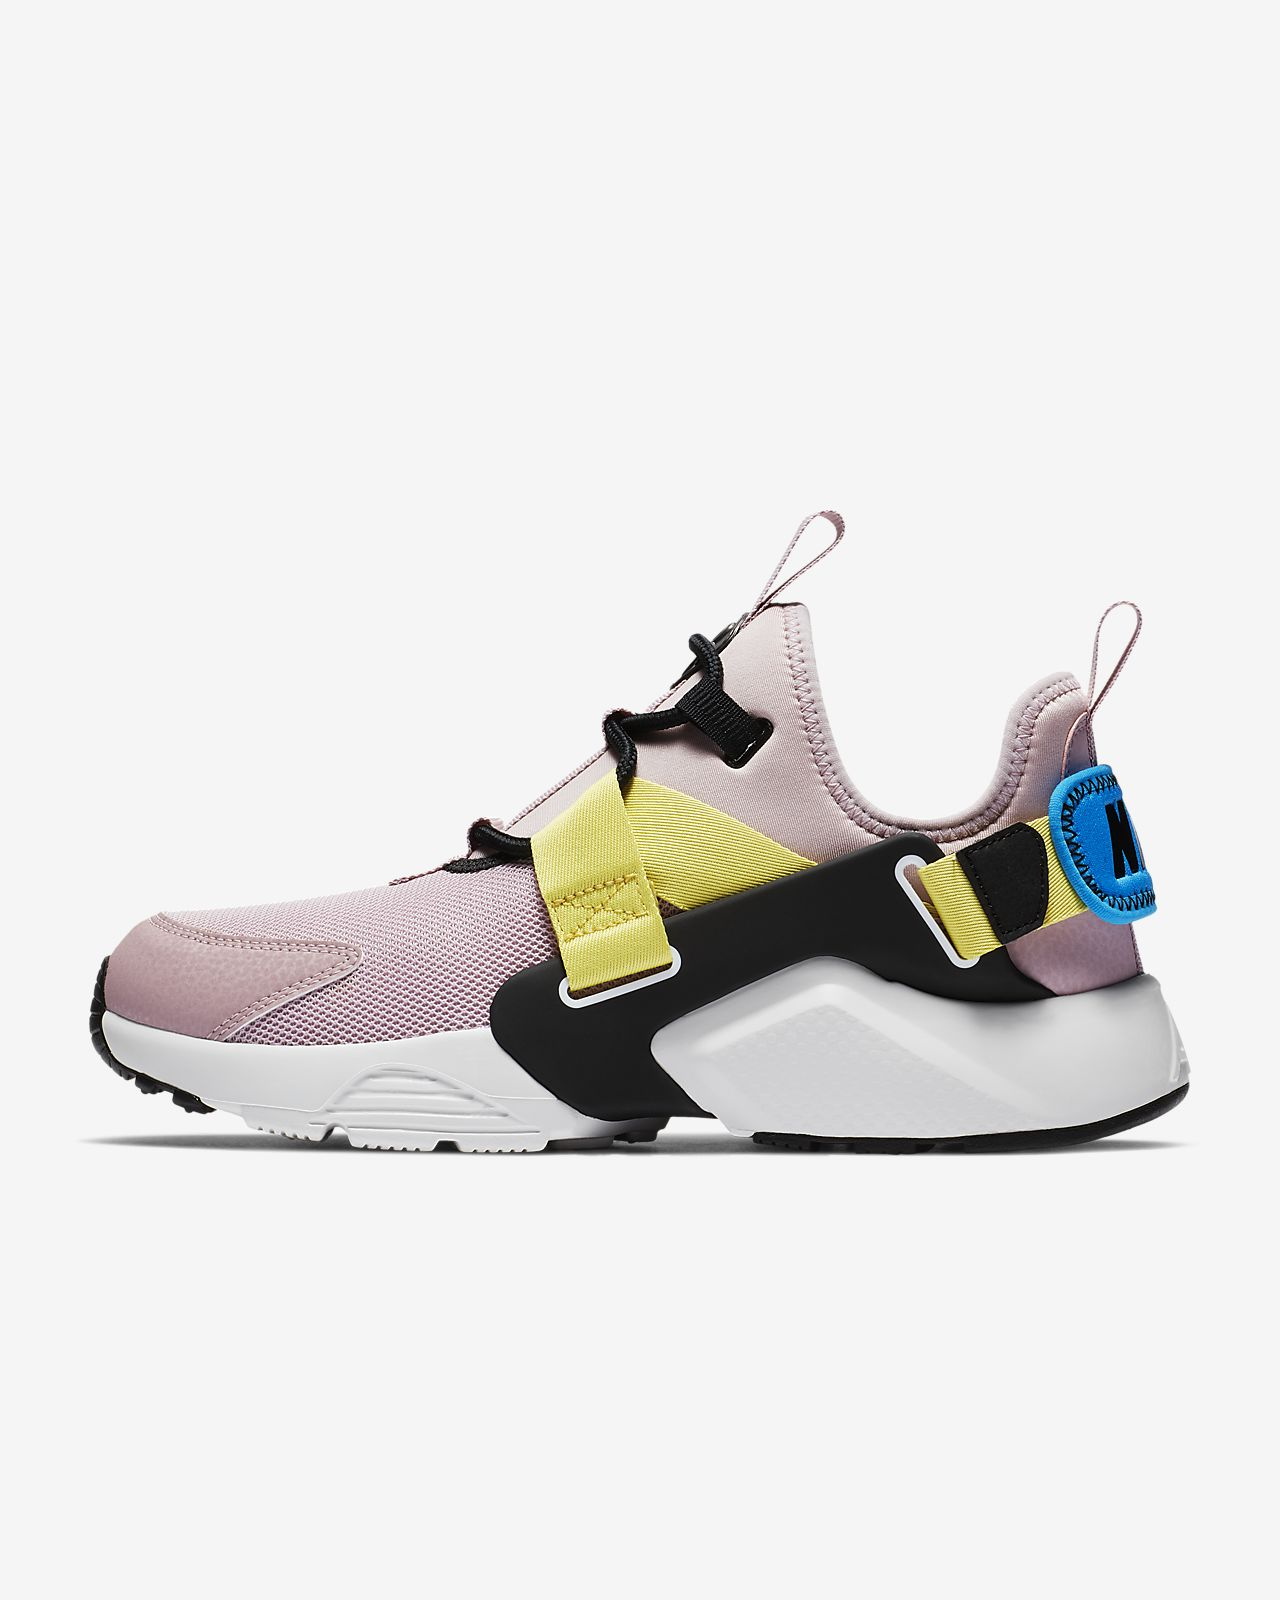 pretty nice 9a435 0fbd4 ... Nike Air Huarache City Low Women s Shoe